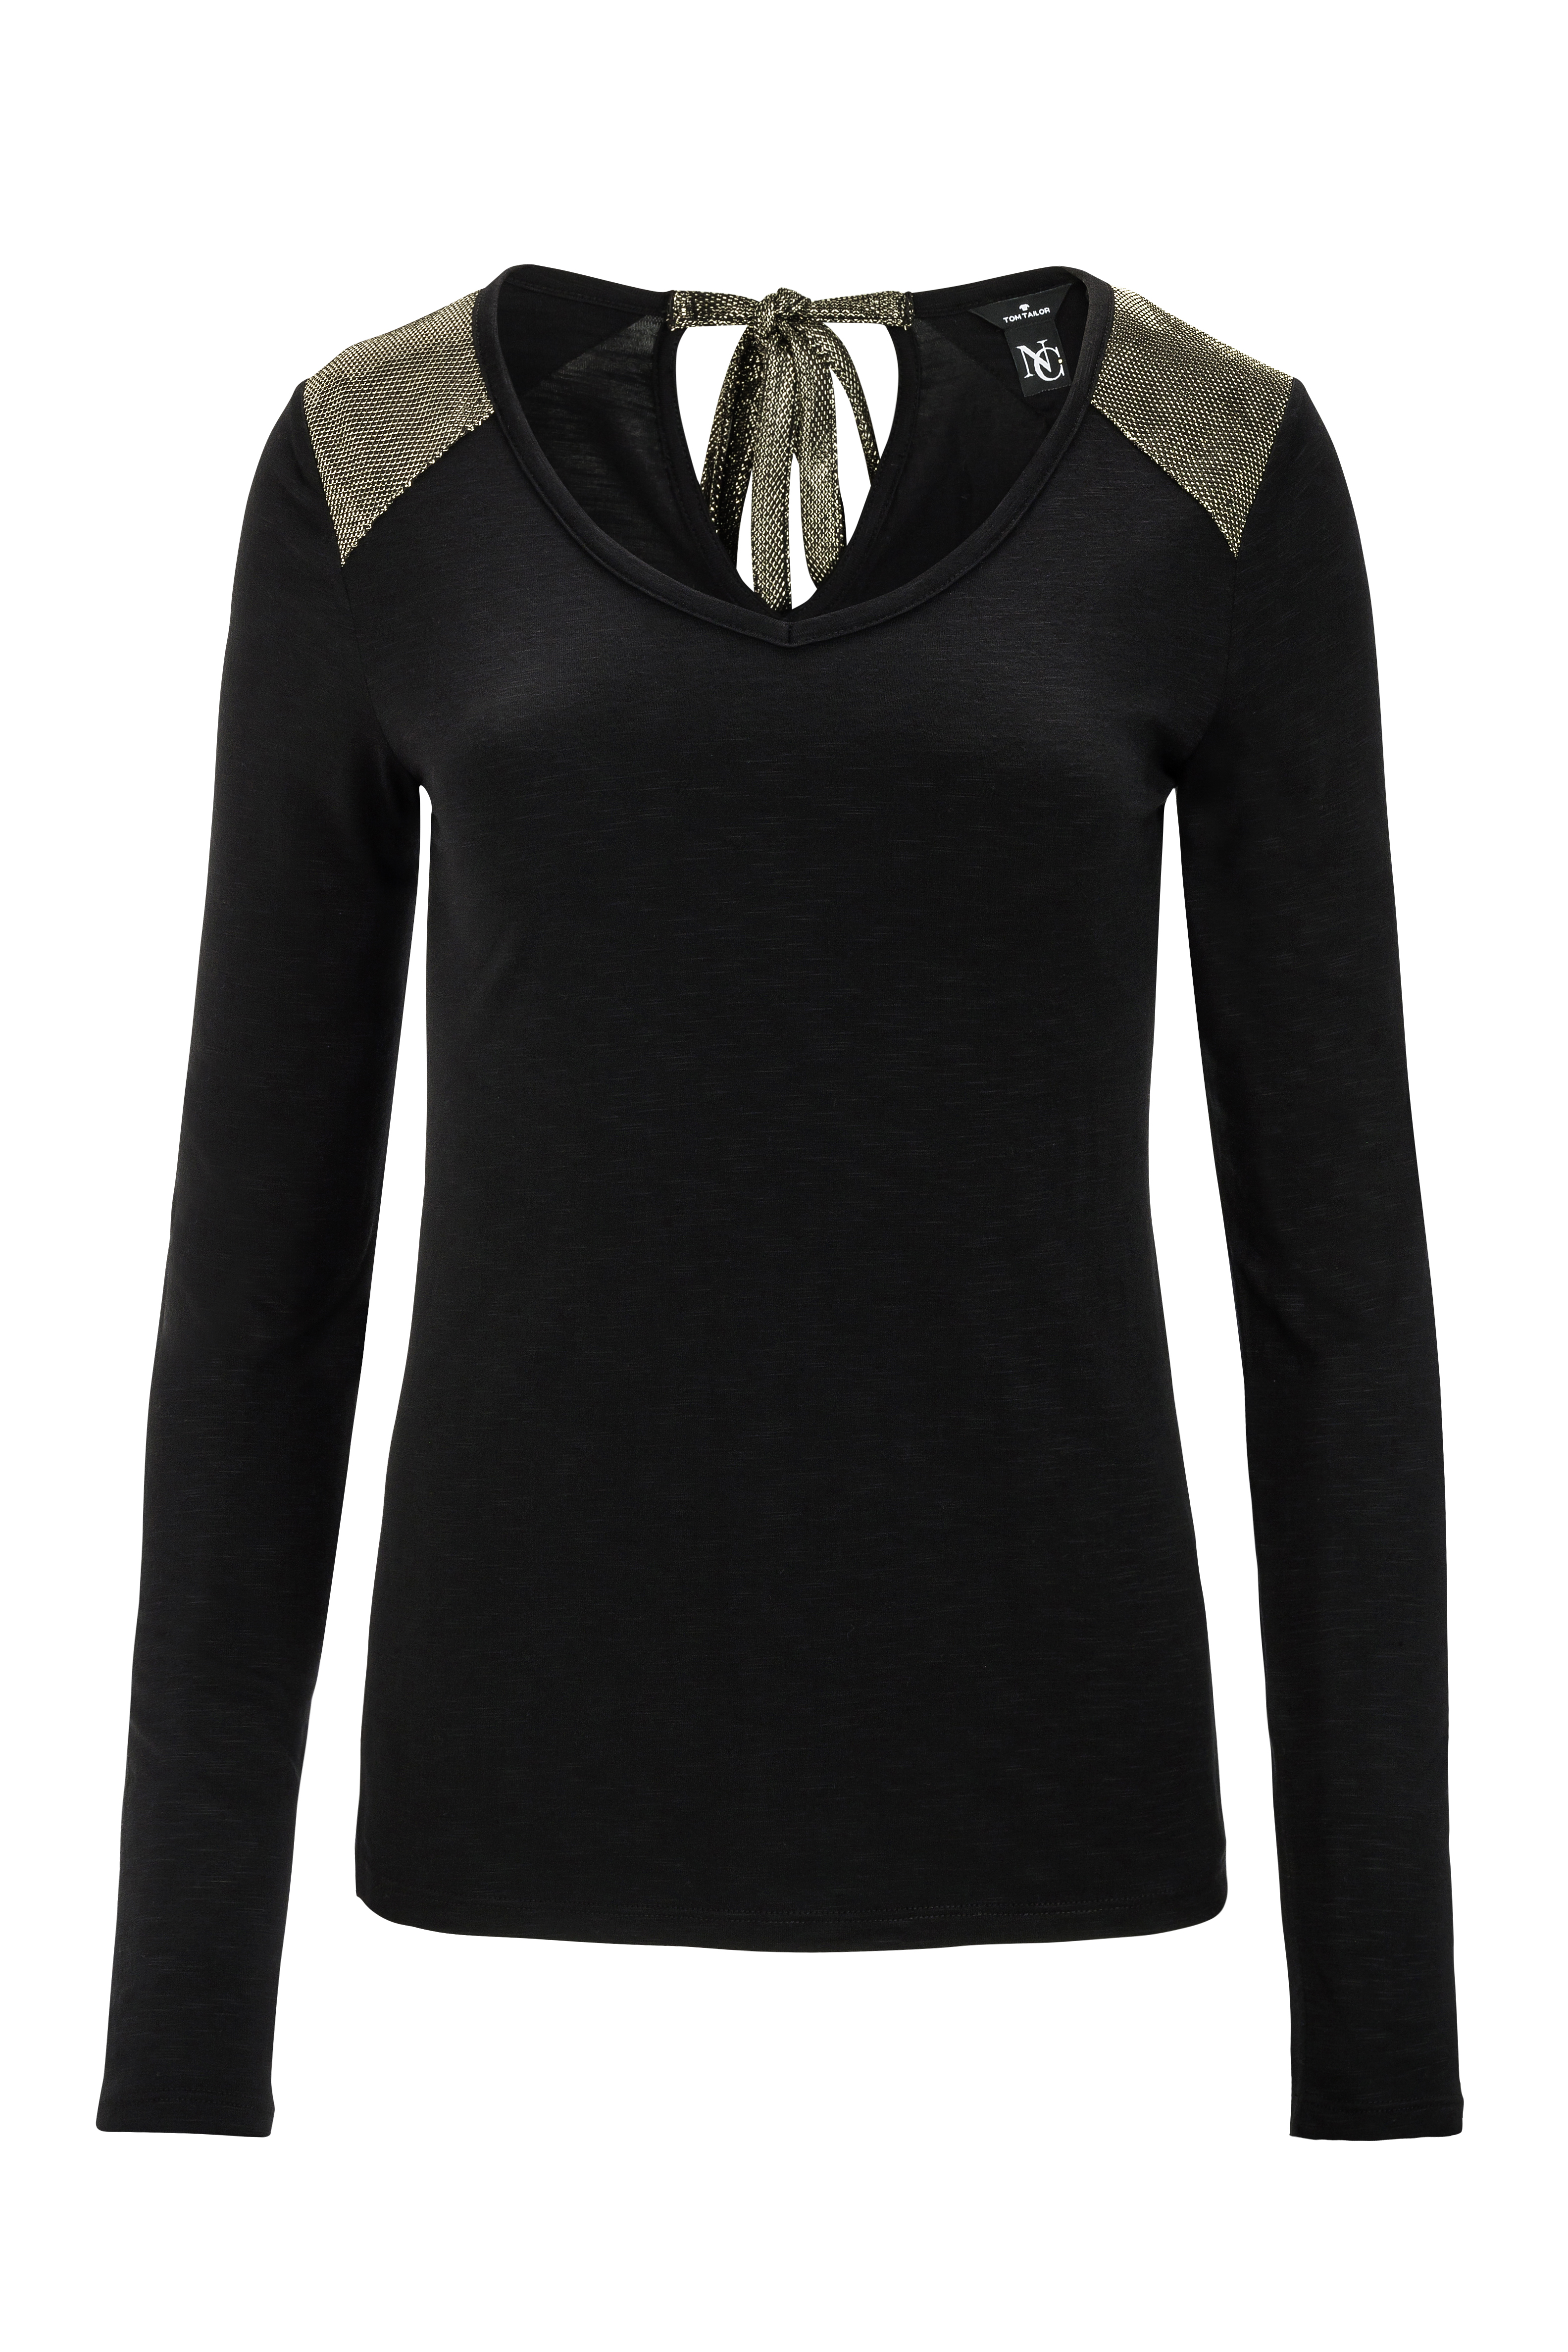 TOMTAILOR_Naomi_Campbell_Longsleeve_39_99